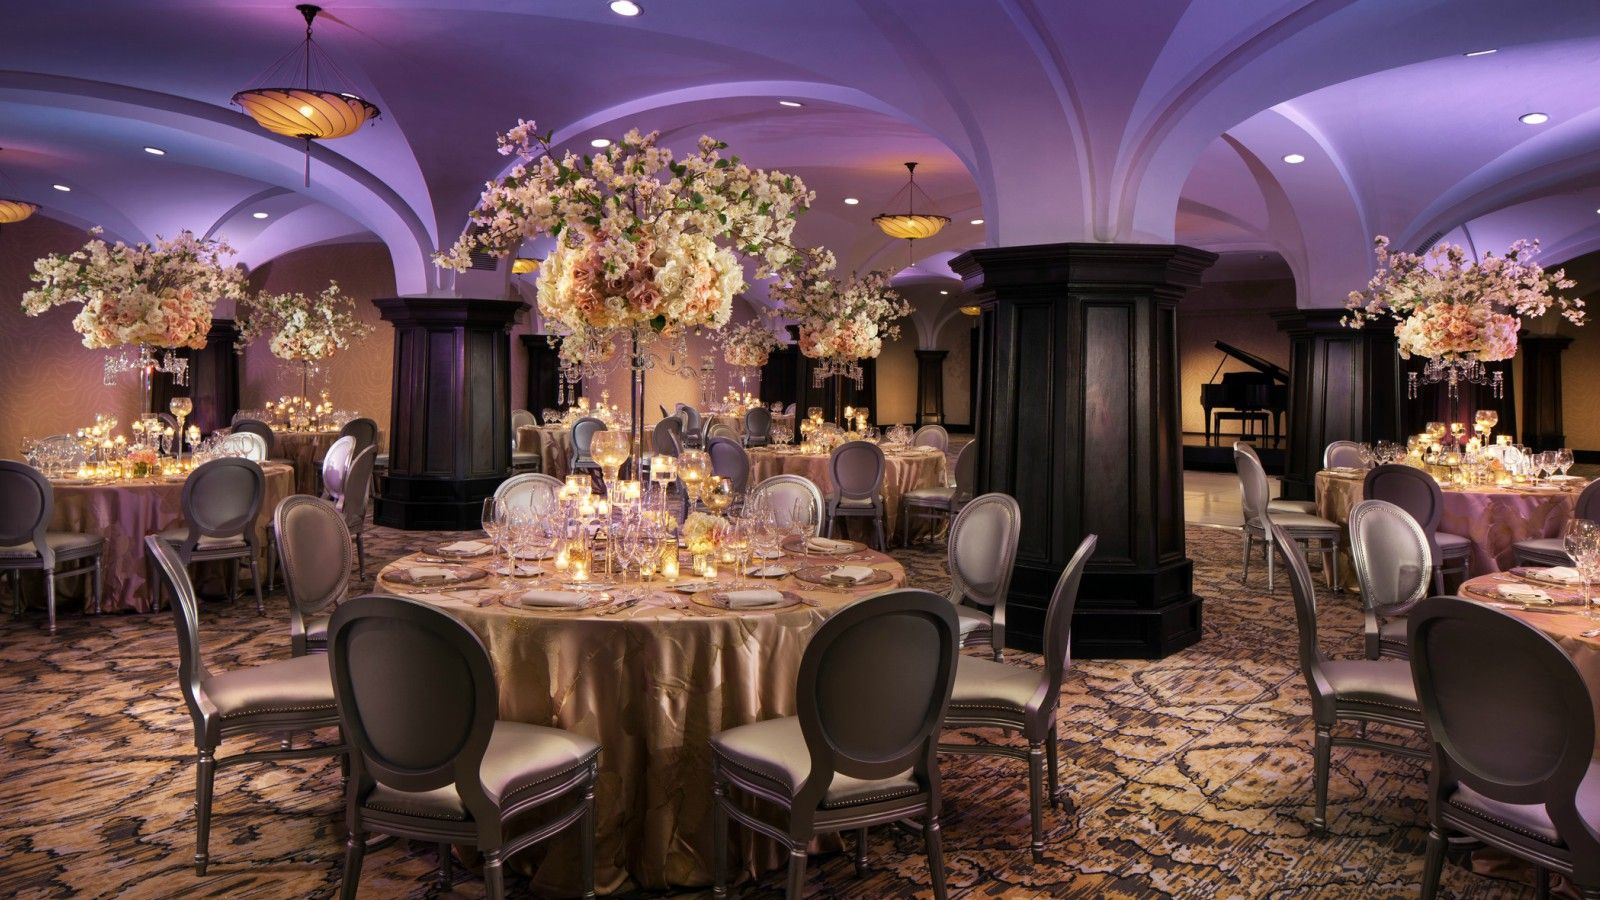 San Diego Wedding Venues - Receptions